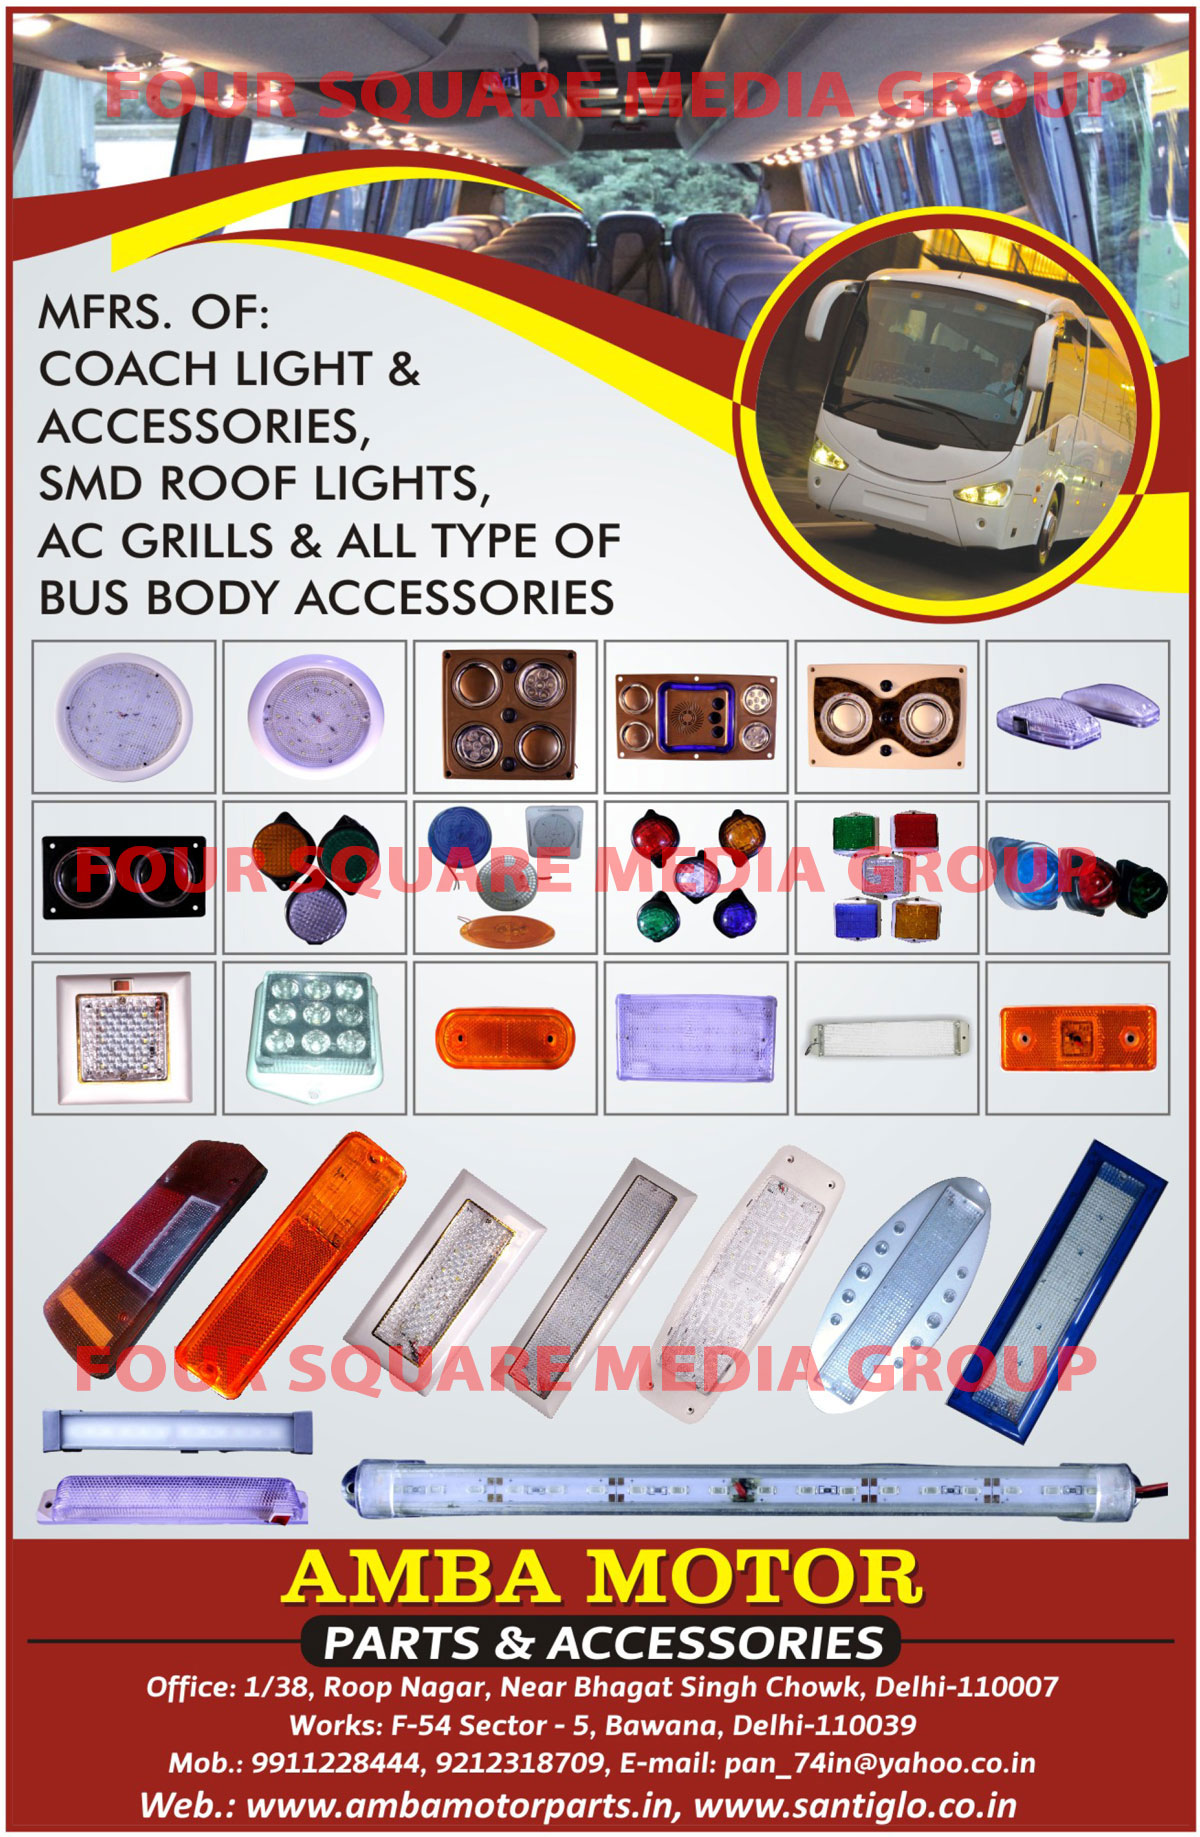 Coach Lights, Coach Accessories, Coach Accessory, Automotive SMD Roof Lights, AC Grills, Bus Body Accessories, Bus Body Accessory